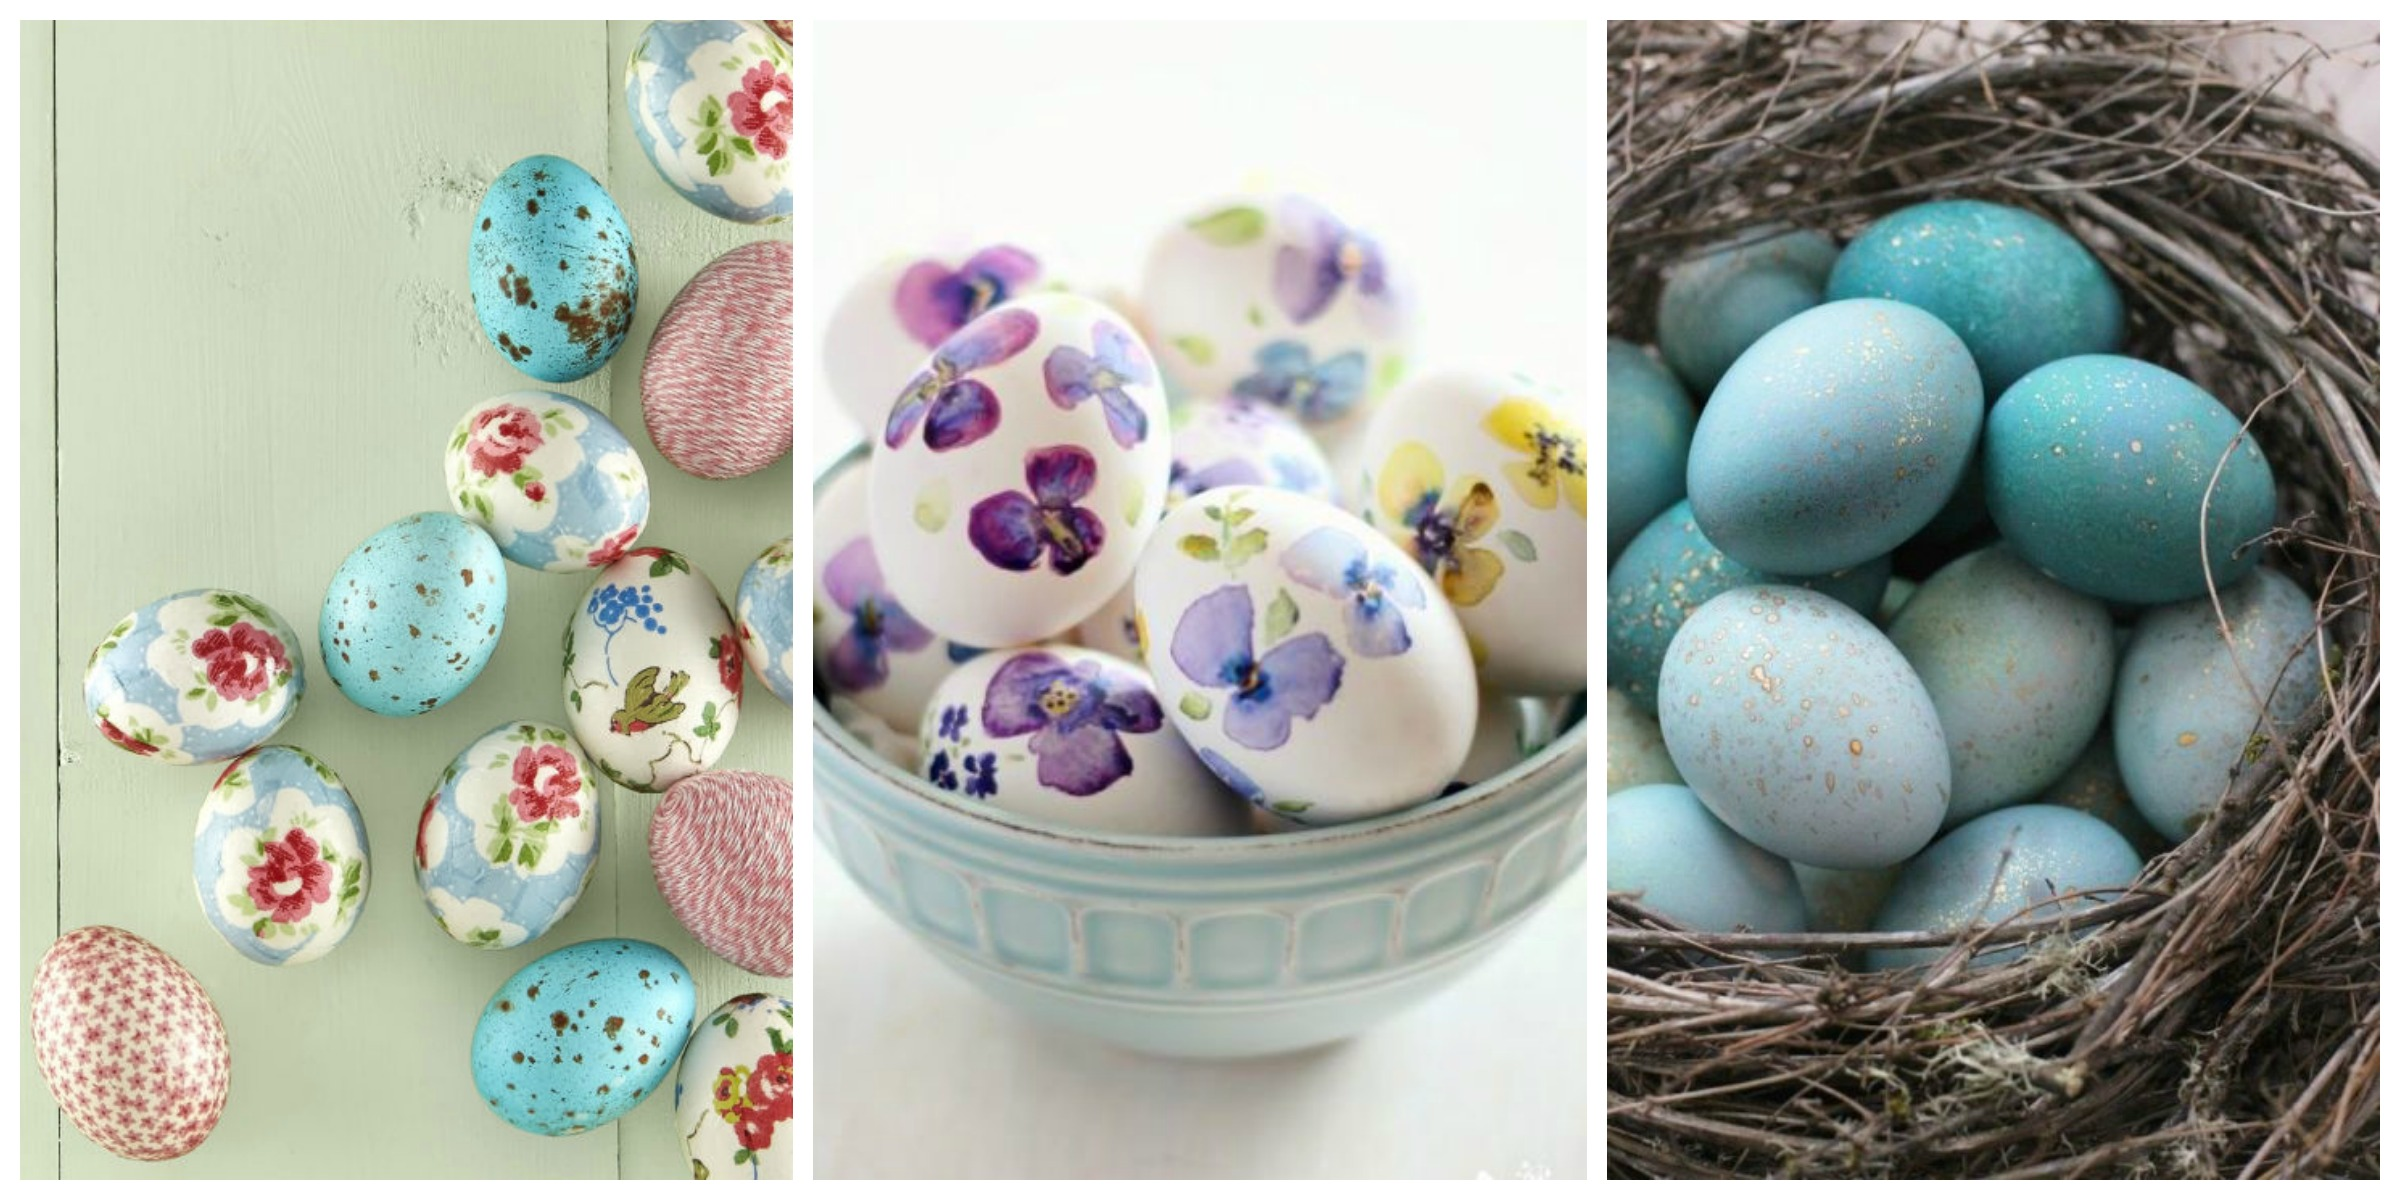 60 fun easter egg designs creative ideas for decorating for Easter egg ideas